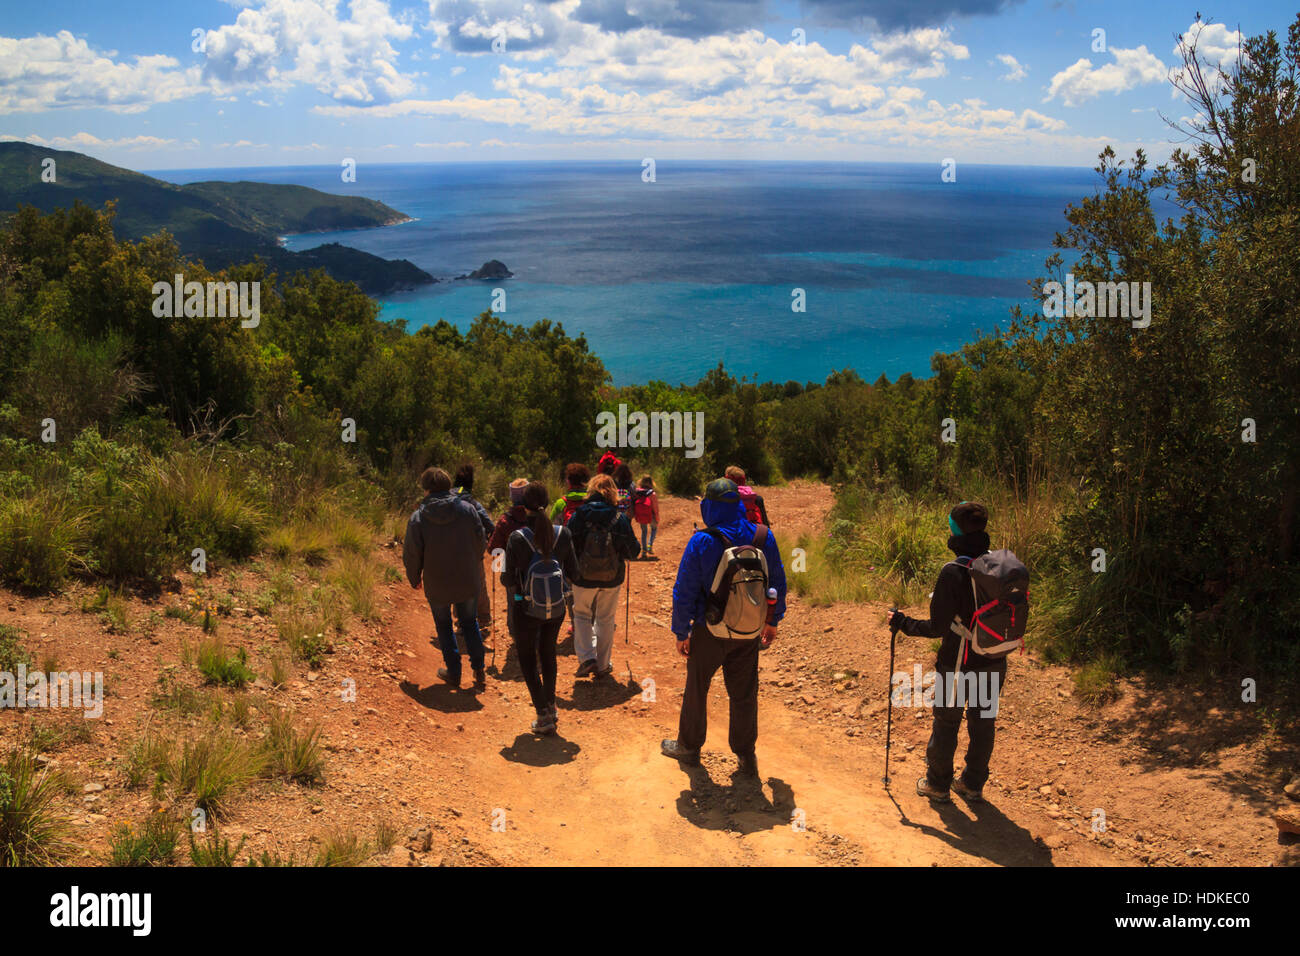 Monte Argentario, April 2016: Group of people trek in the Tuscan wild nature with seascape in a sunny day, on April - Stock Image